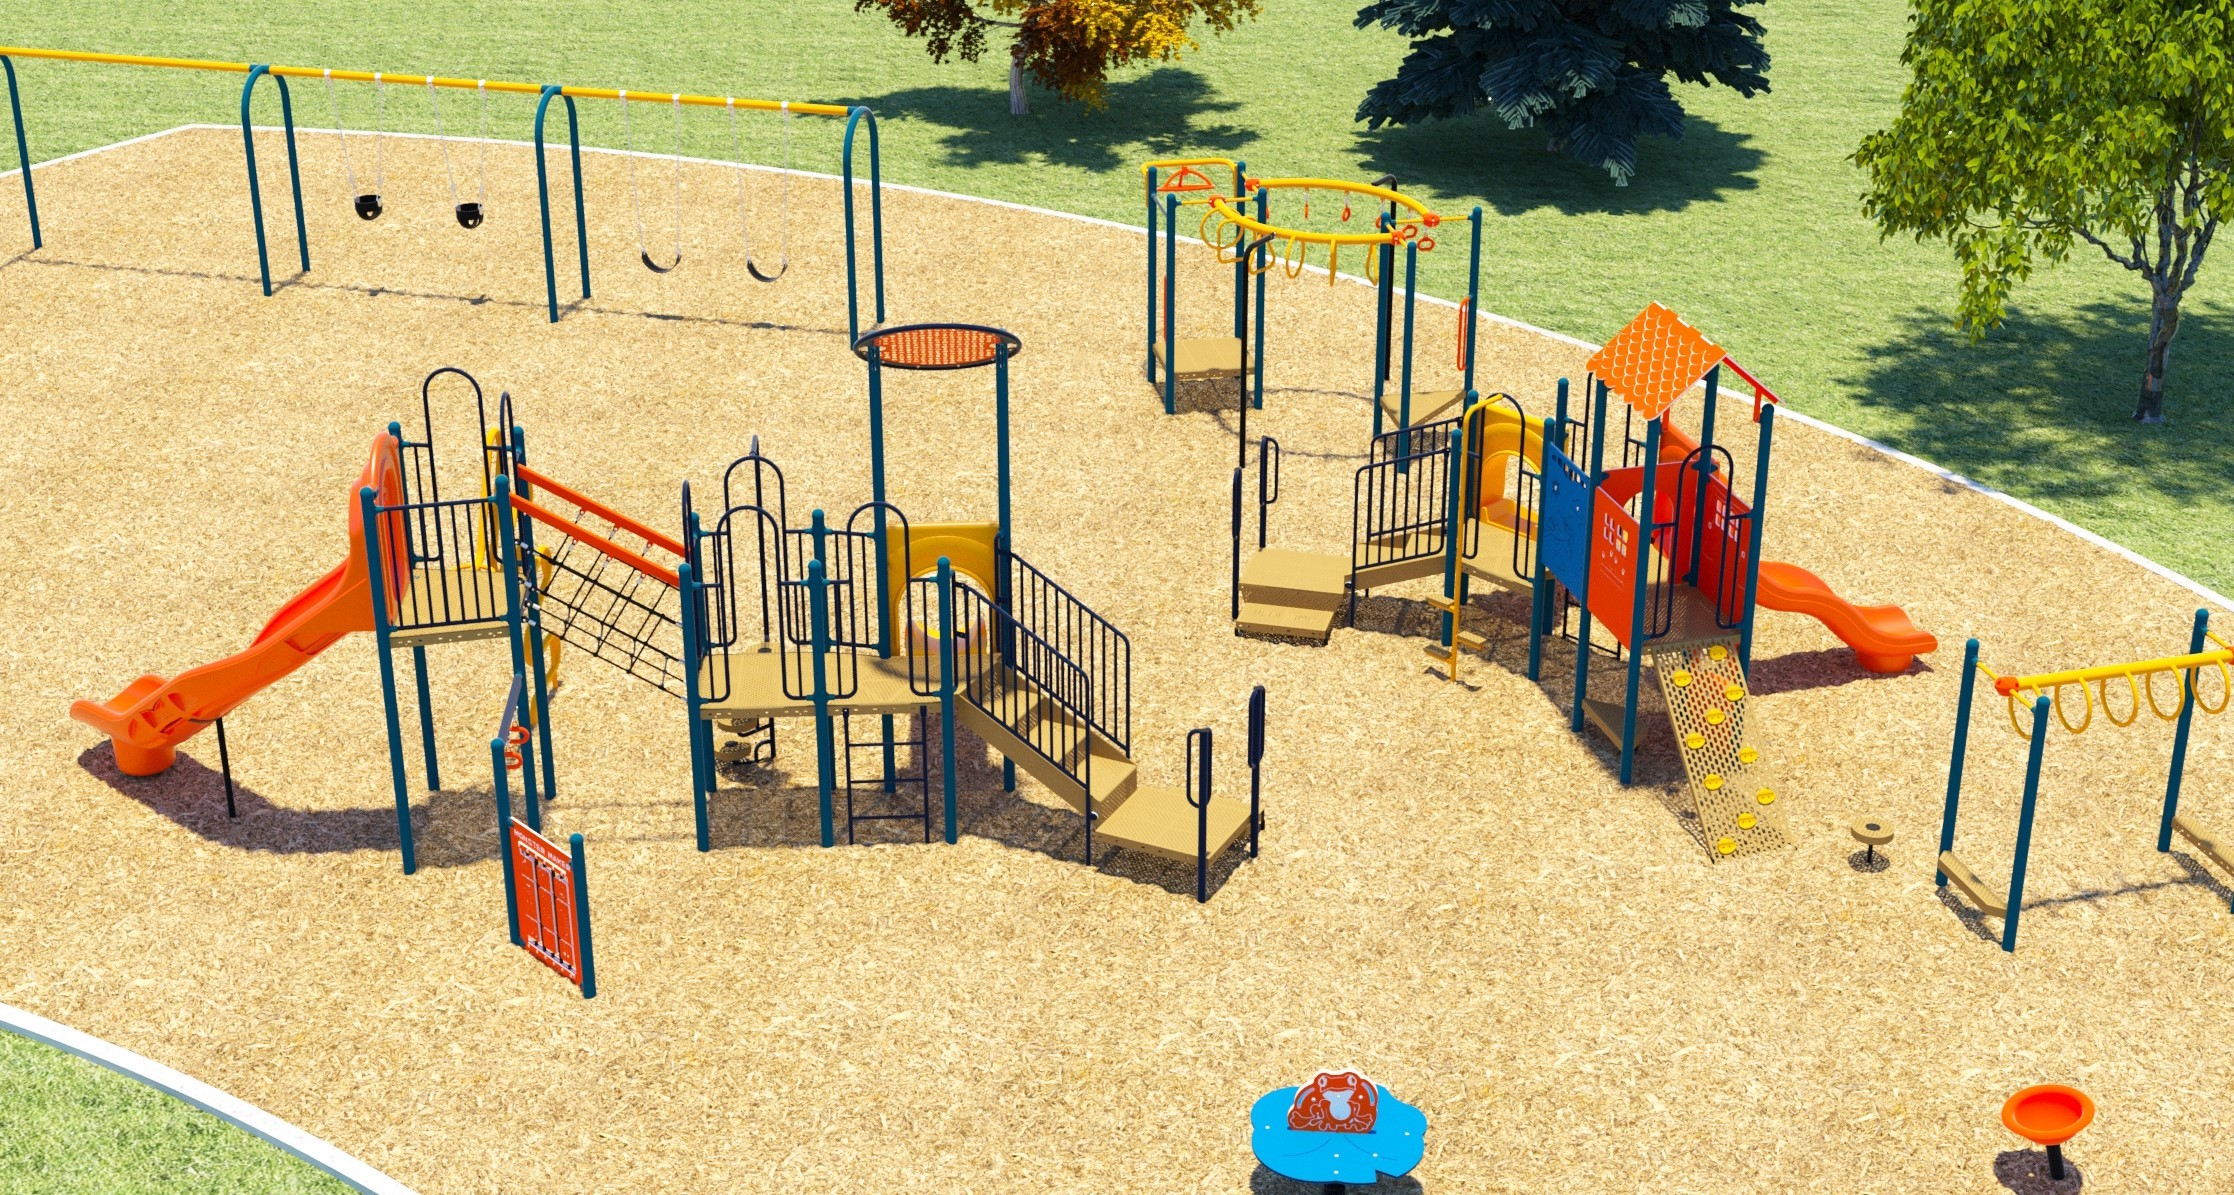 Aerial image of the playground showing Two belt swings, two toddler swings and one accessible swing (the accessible swing is not pictured, but will be located beside the toddler swing), a monkey bar structure, a senior and a junior play structure, each with slides and various climbing options, and a second set of monkey bars. In the forefront there are two stand-alone seated toys.